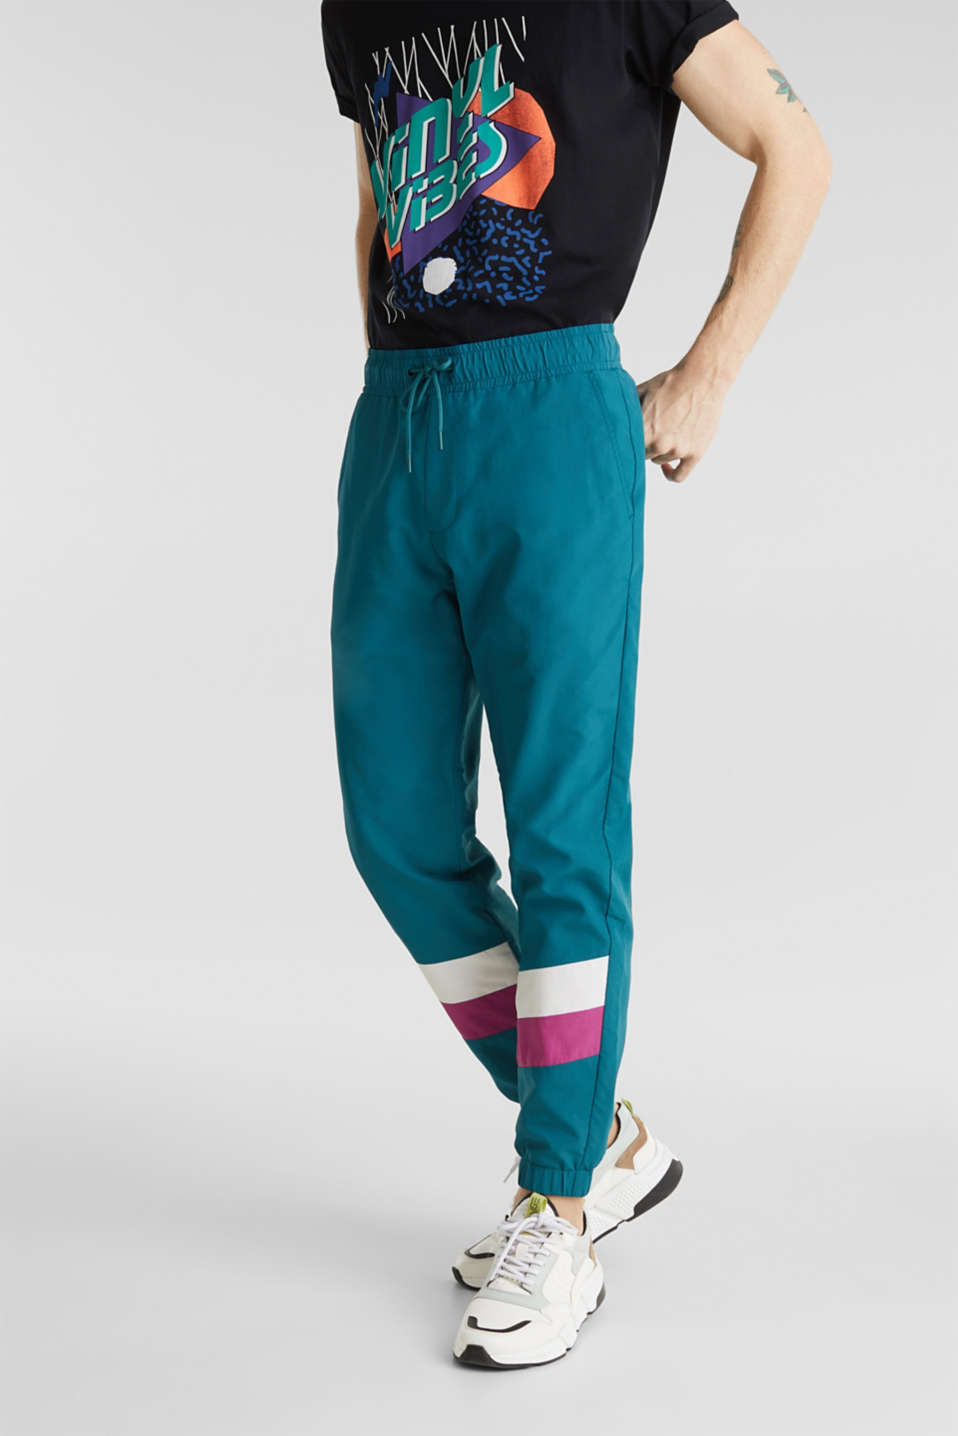 edc - Retro-Track-Pants aus Nylon